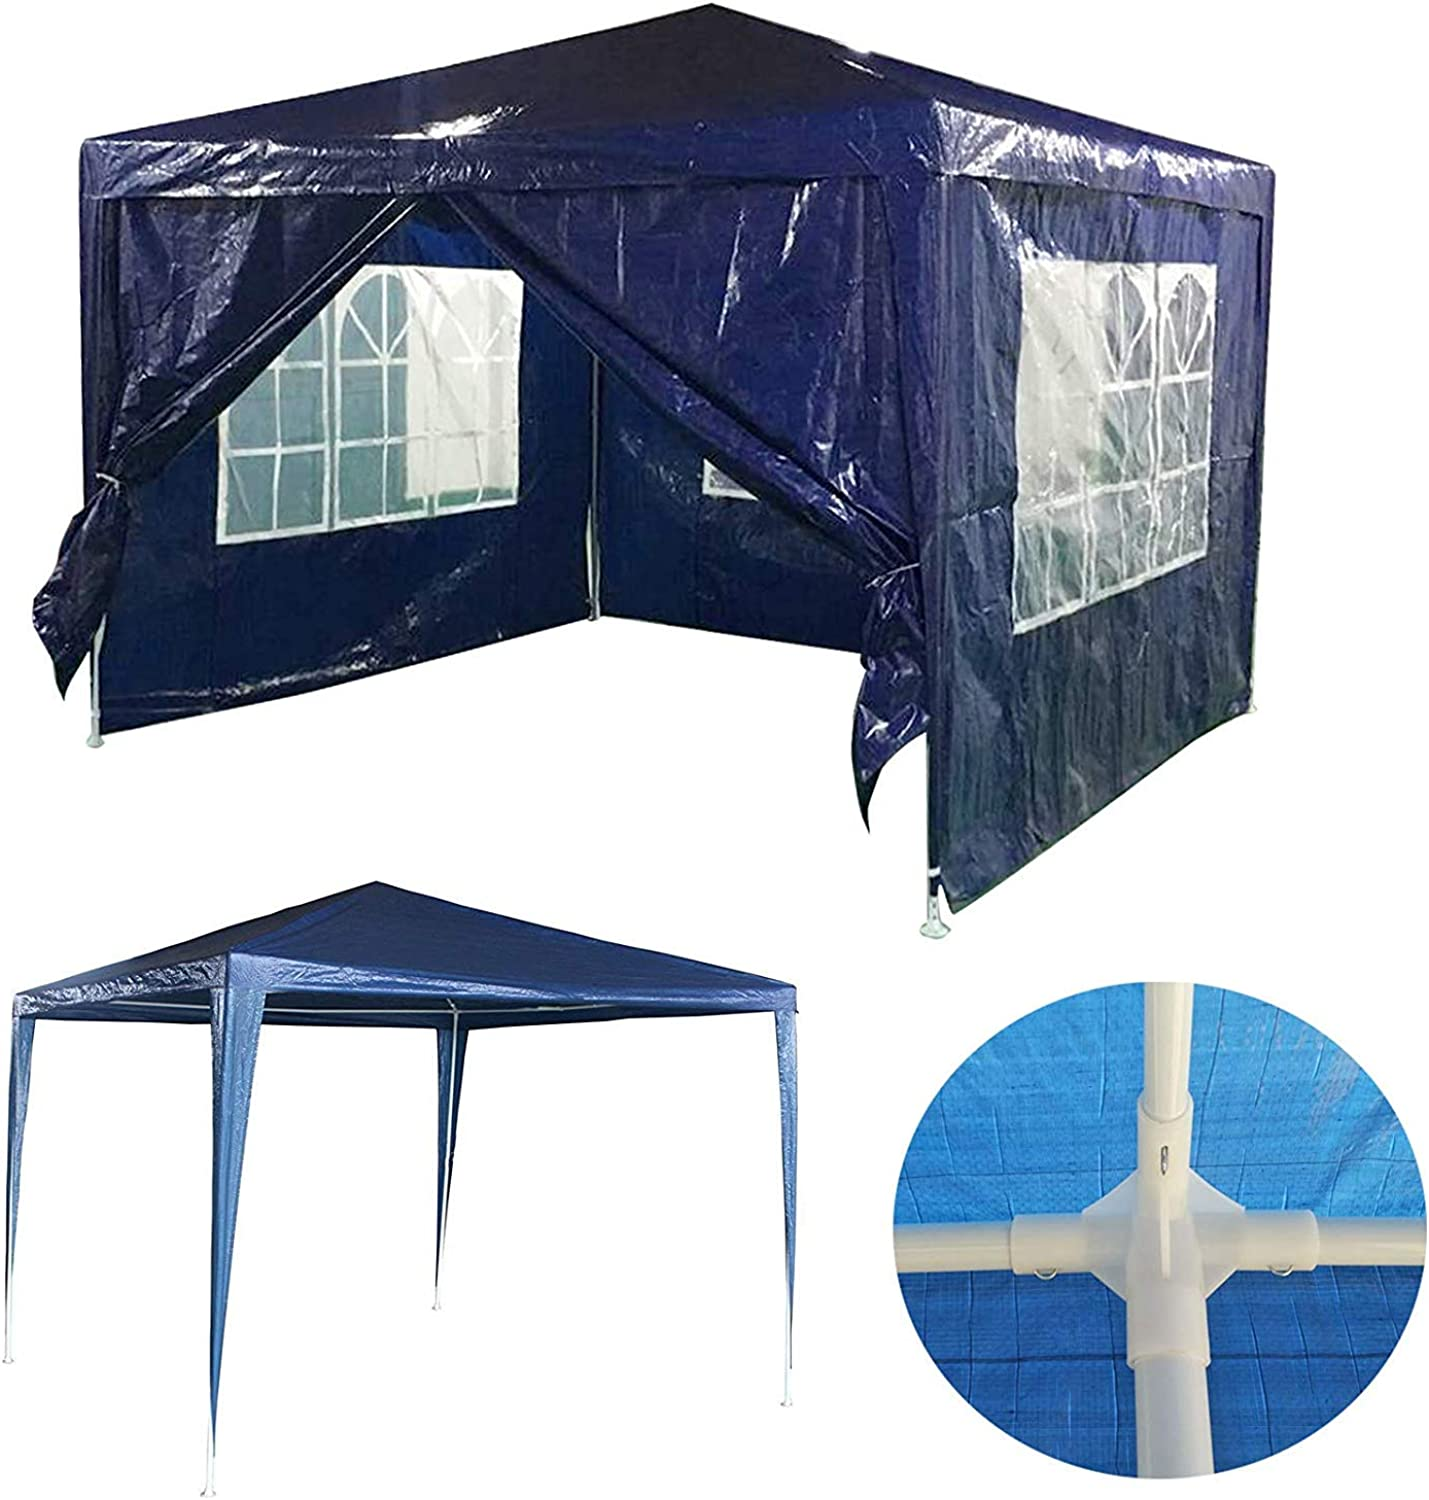 Gazebo 3x3 Meters with 4 Removable Sidewalls Outdoor Garden Party Tent,Waterproof UV Predection Awning Canopy,Steel Frame Polyethylene Cover Shelter